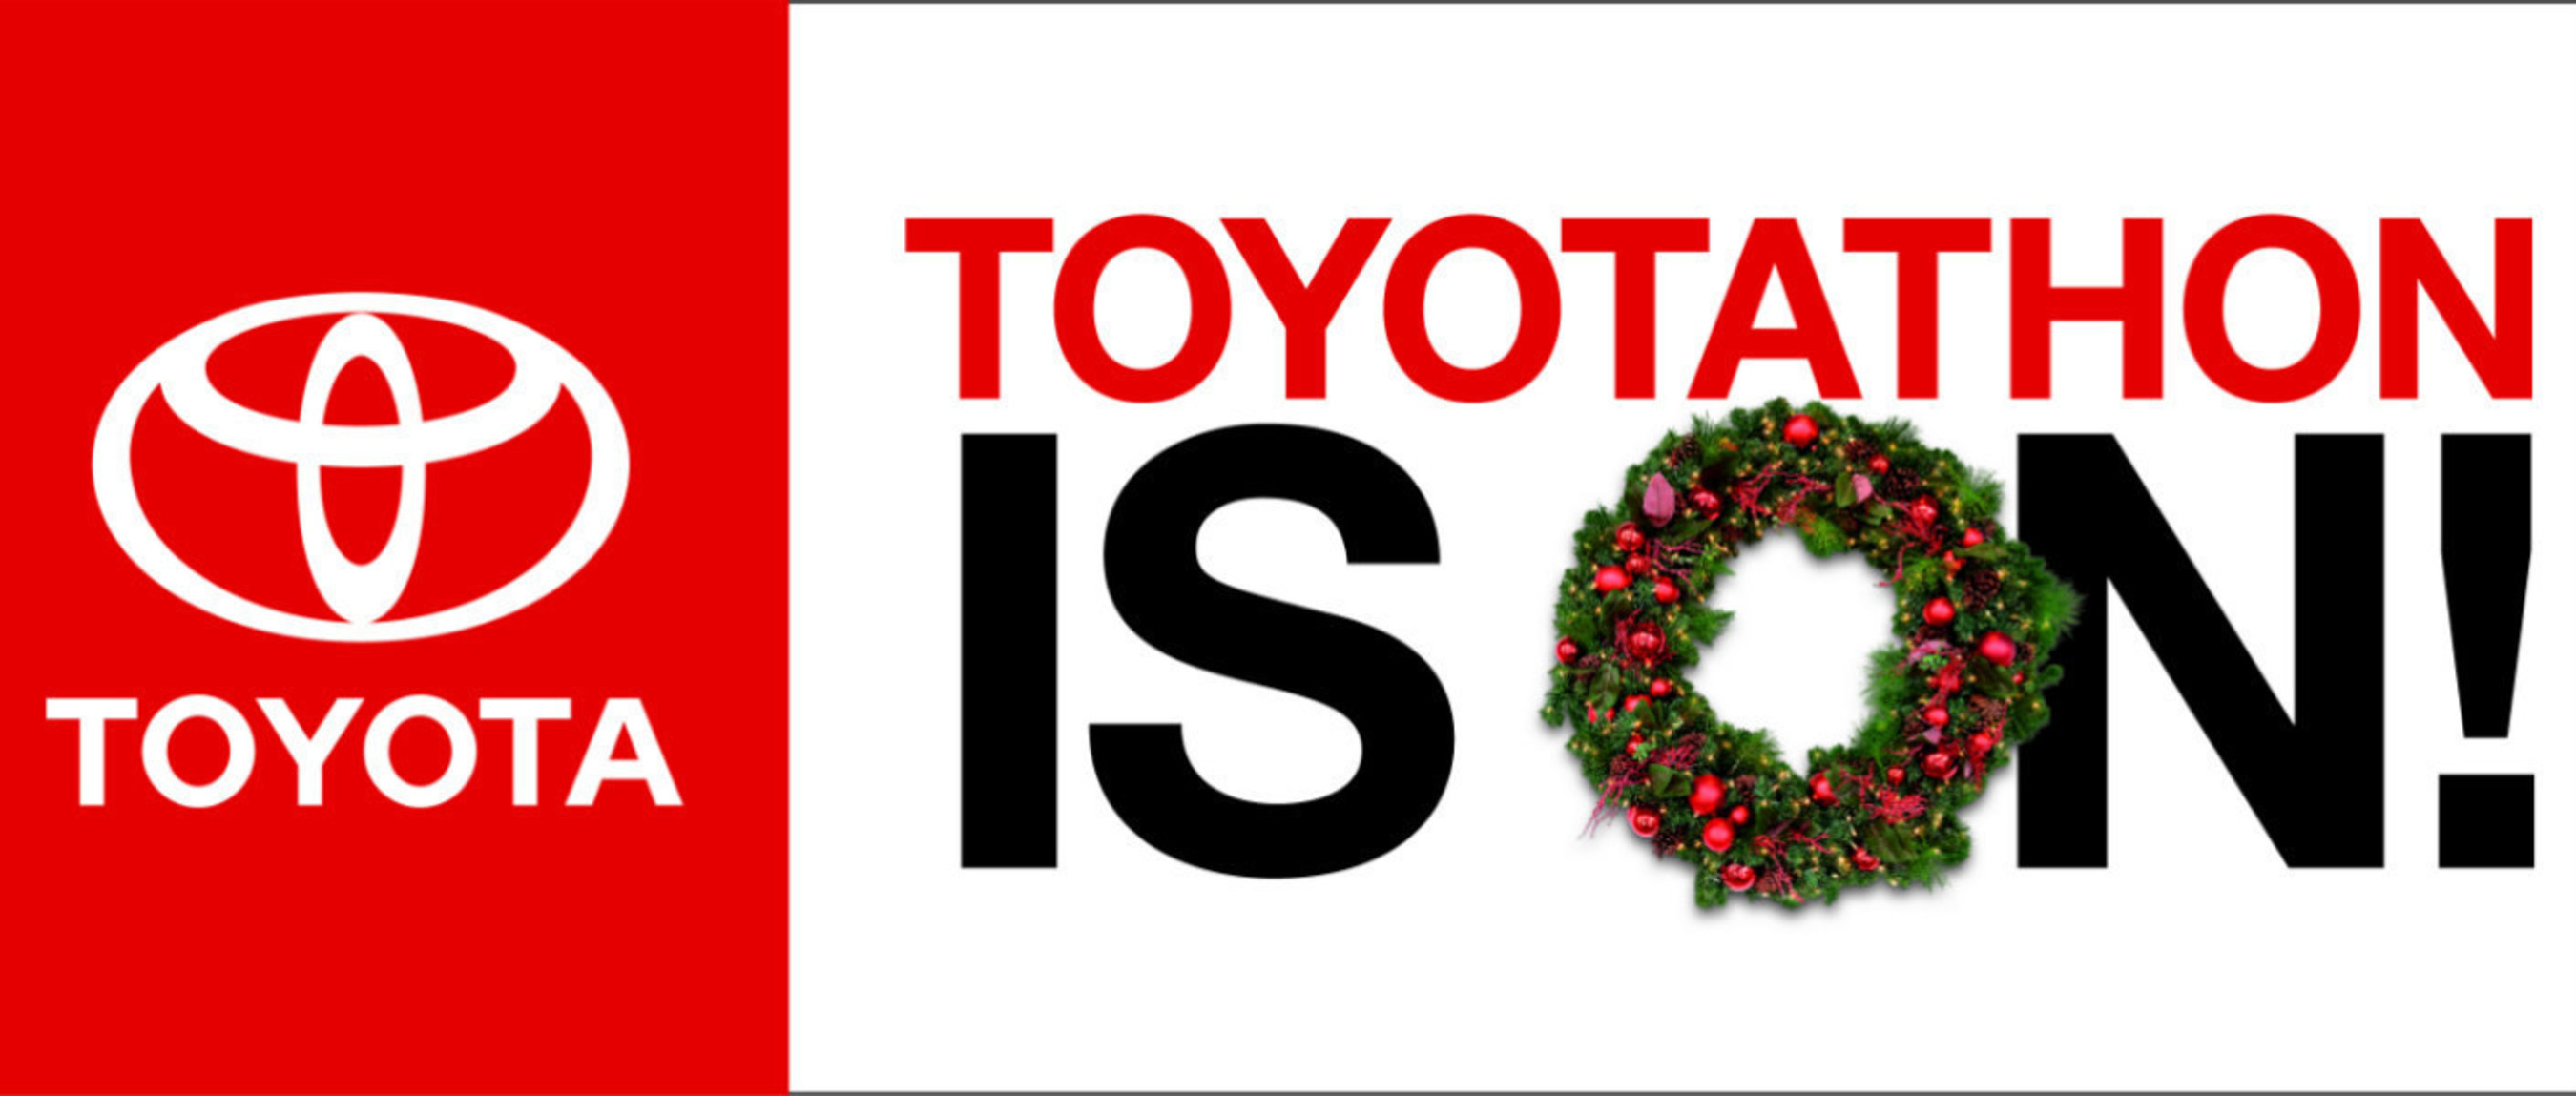 Toyota of Naperville gears up for new Toyotathon sale